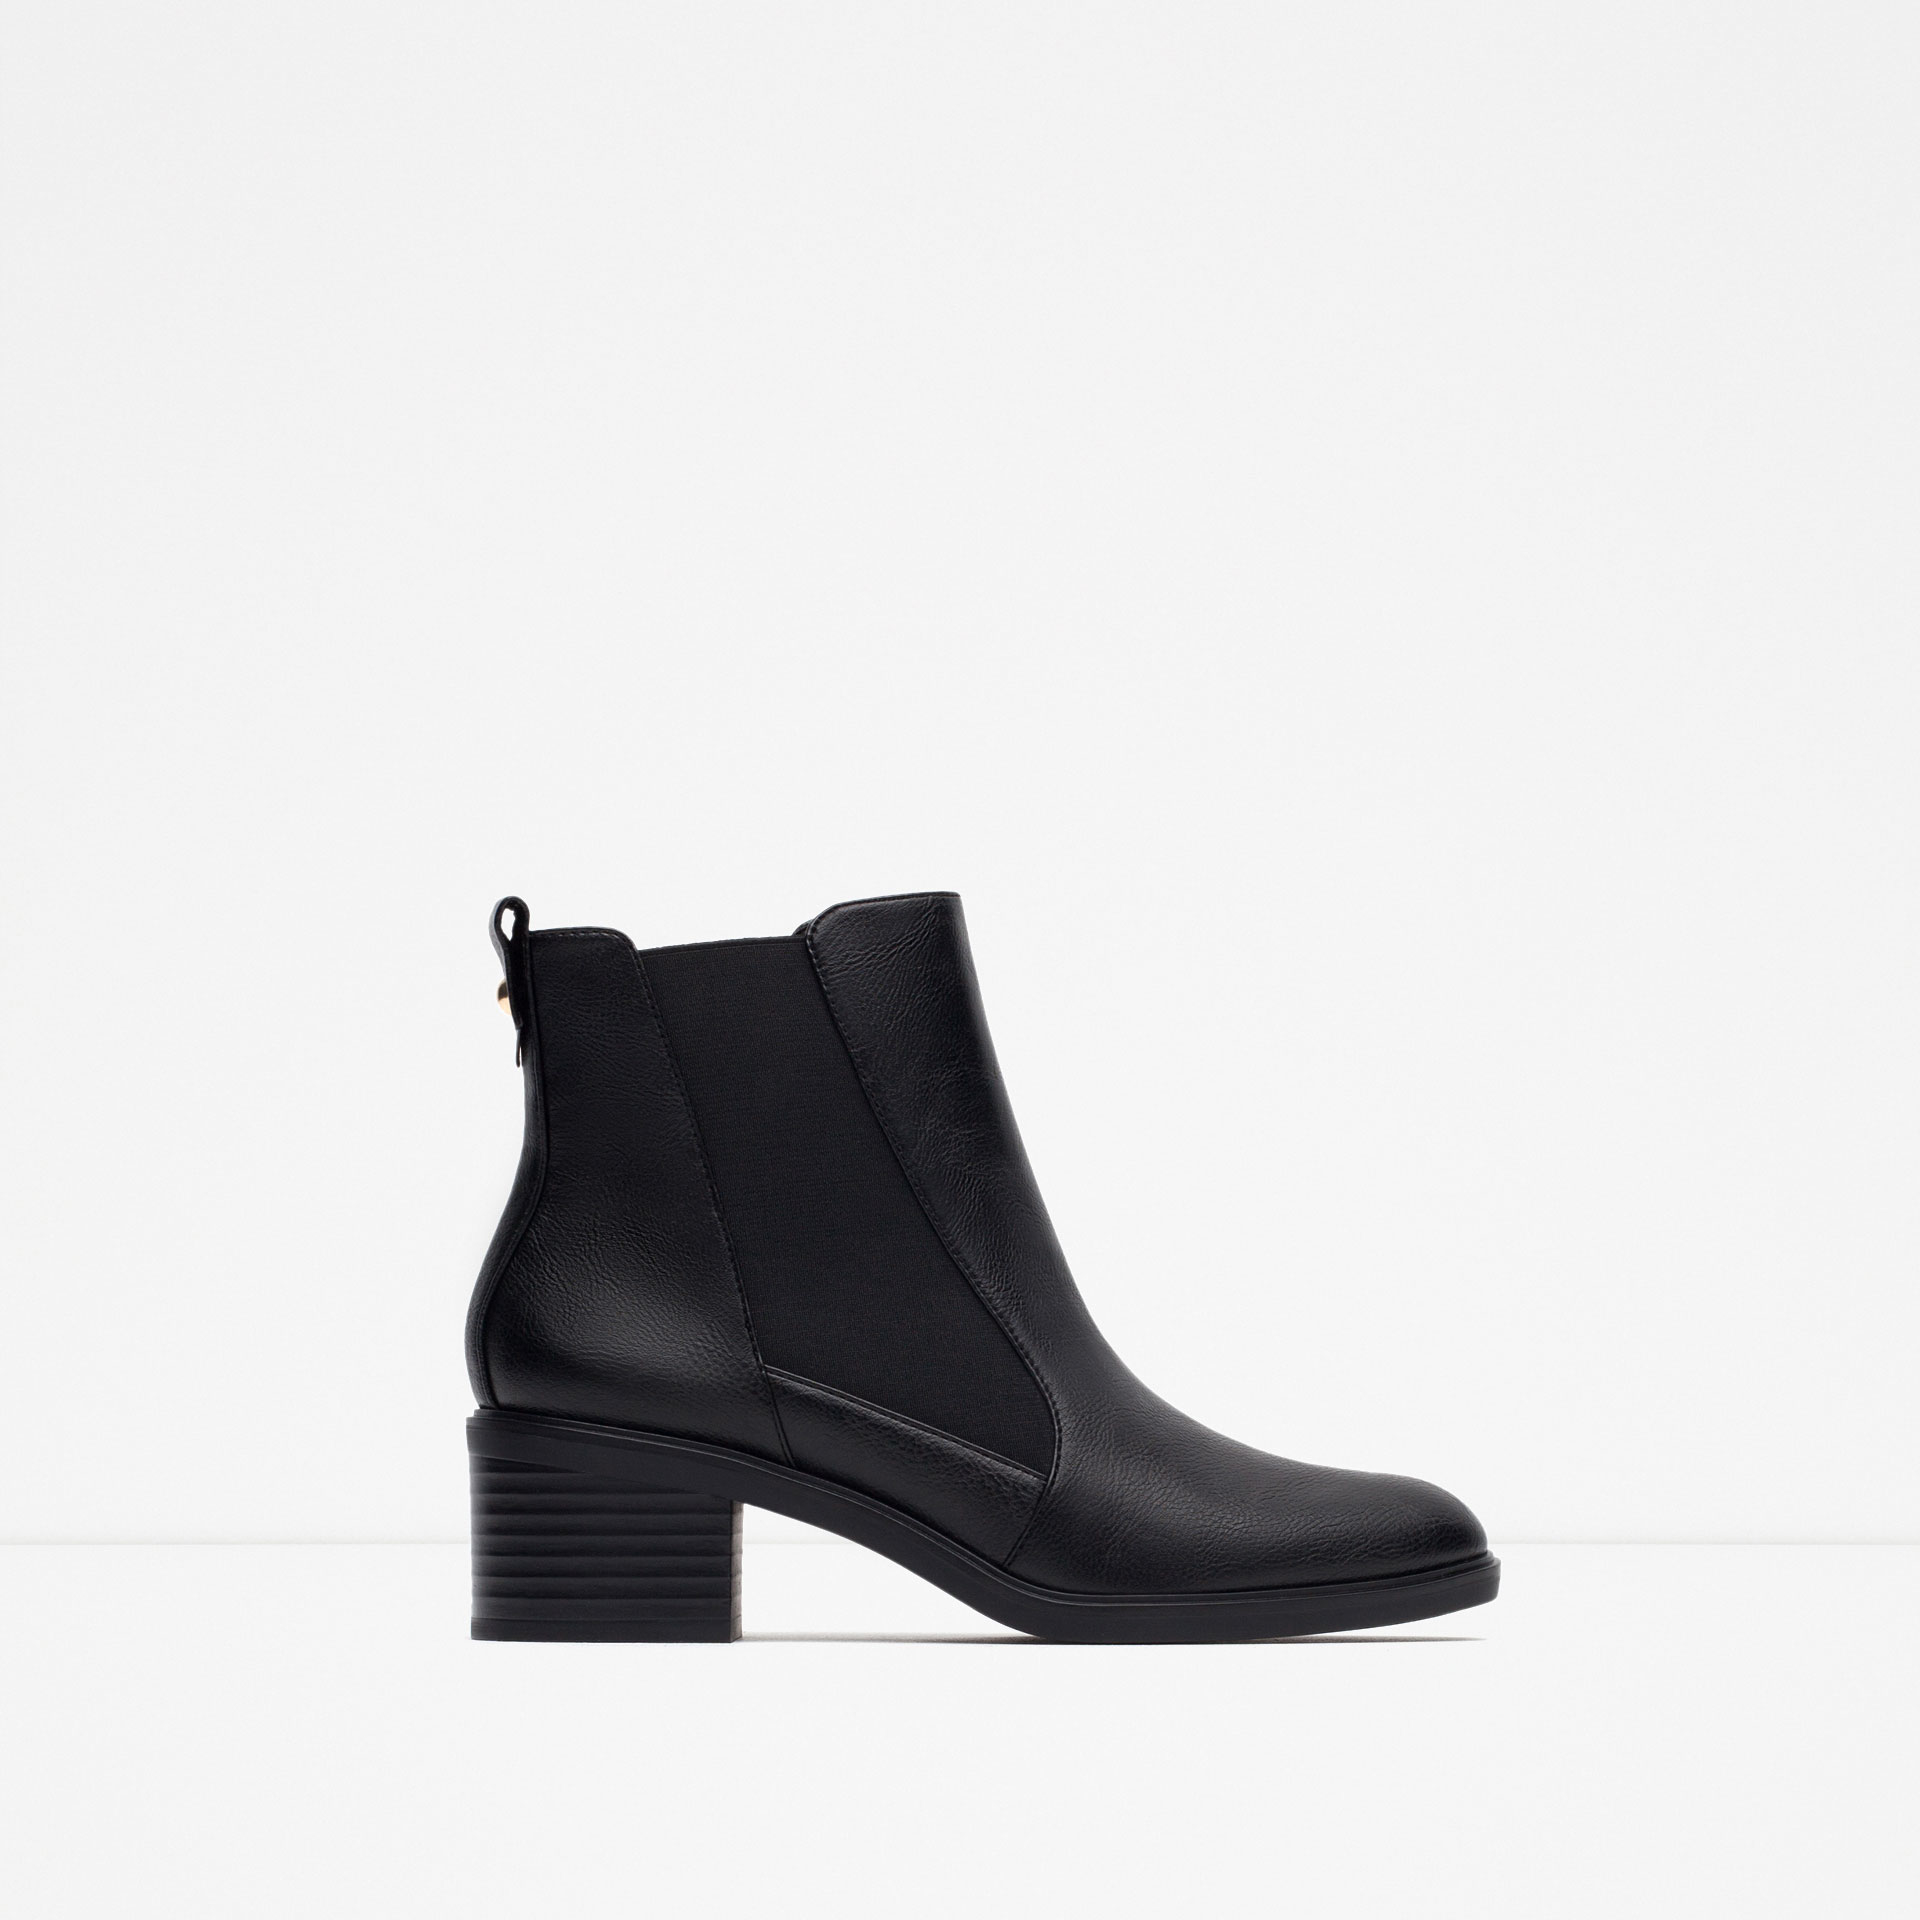 Zara Elasticated High Heel Ankle Boots in Black | Lyst